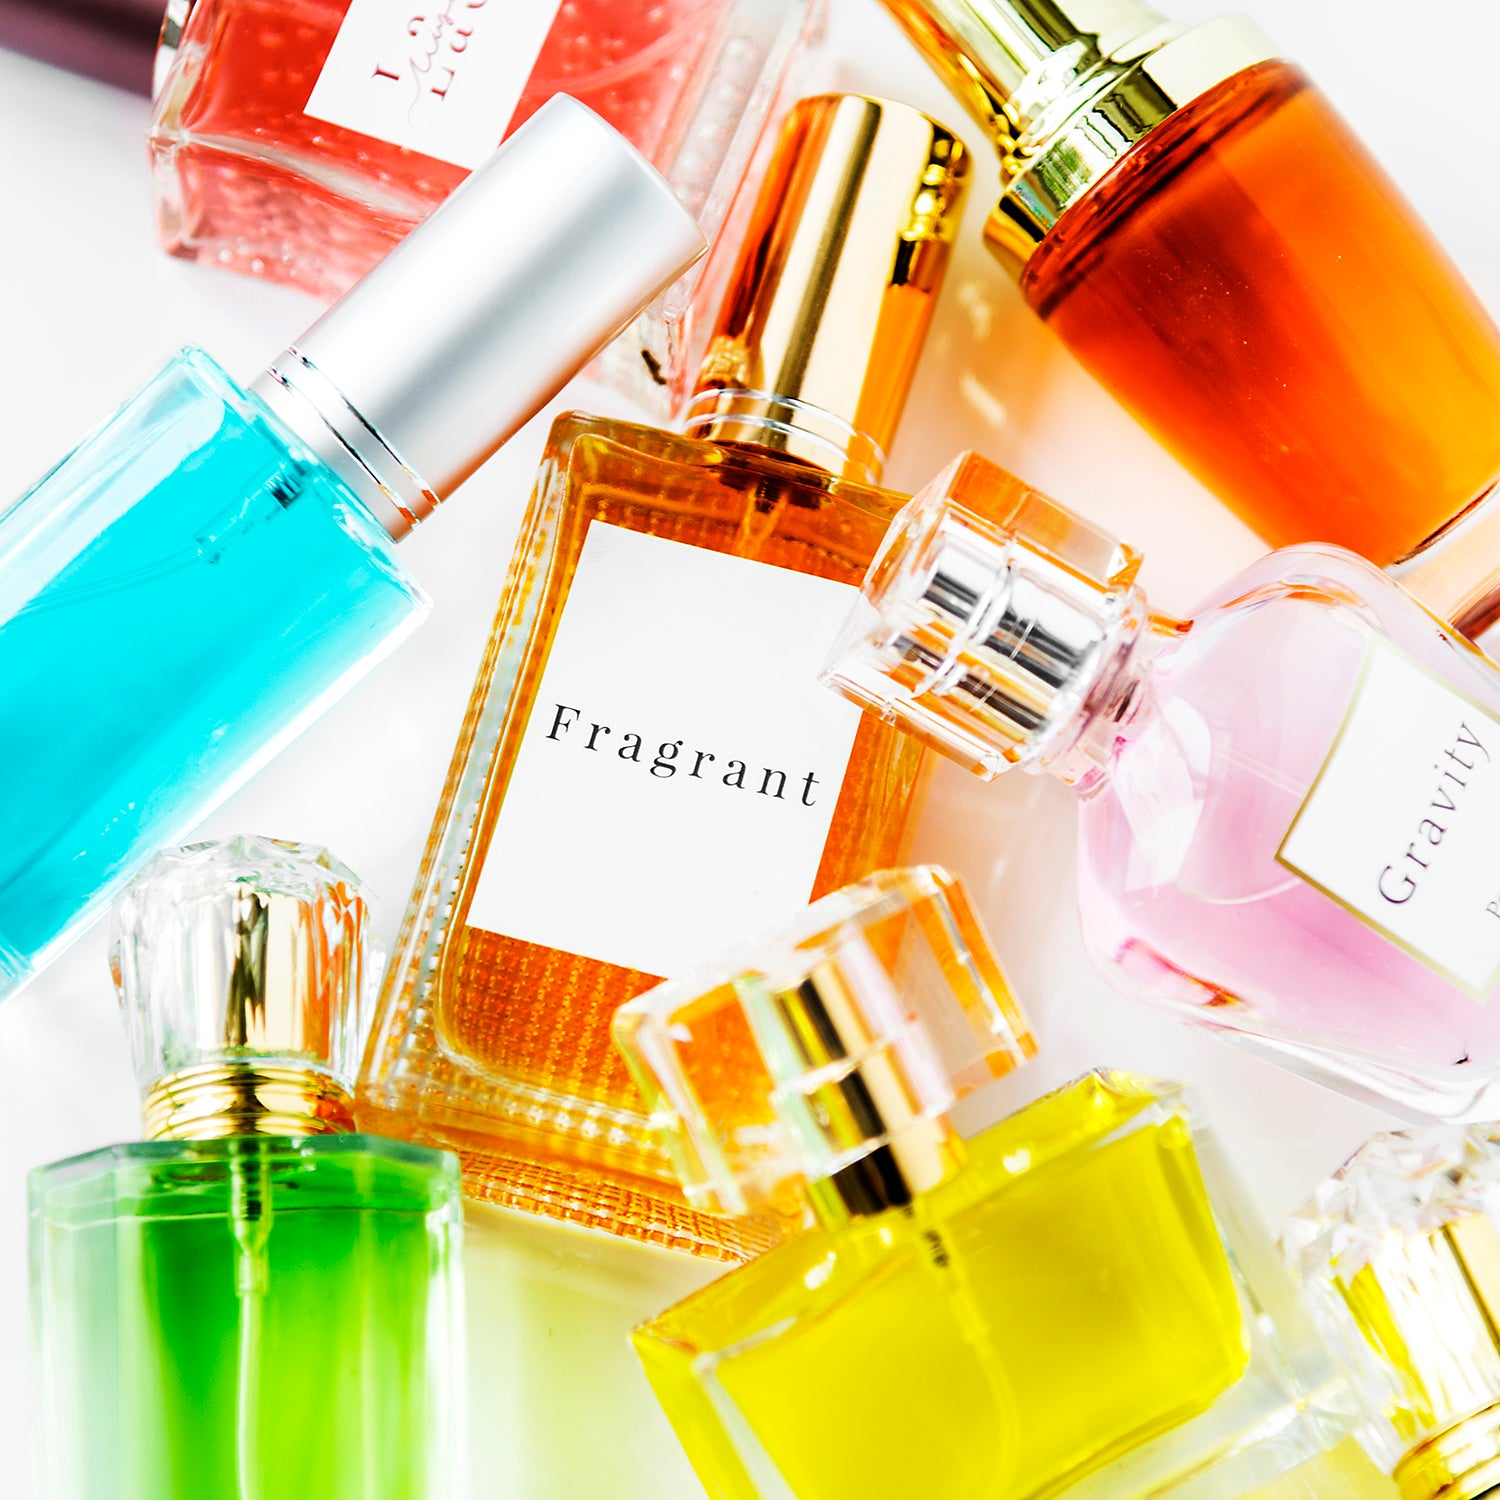 5 Hormone-disrupting Perfume Ingredients